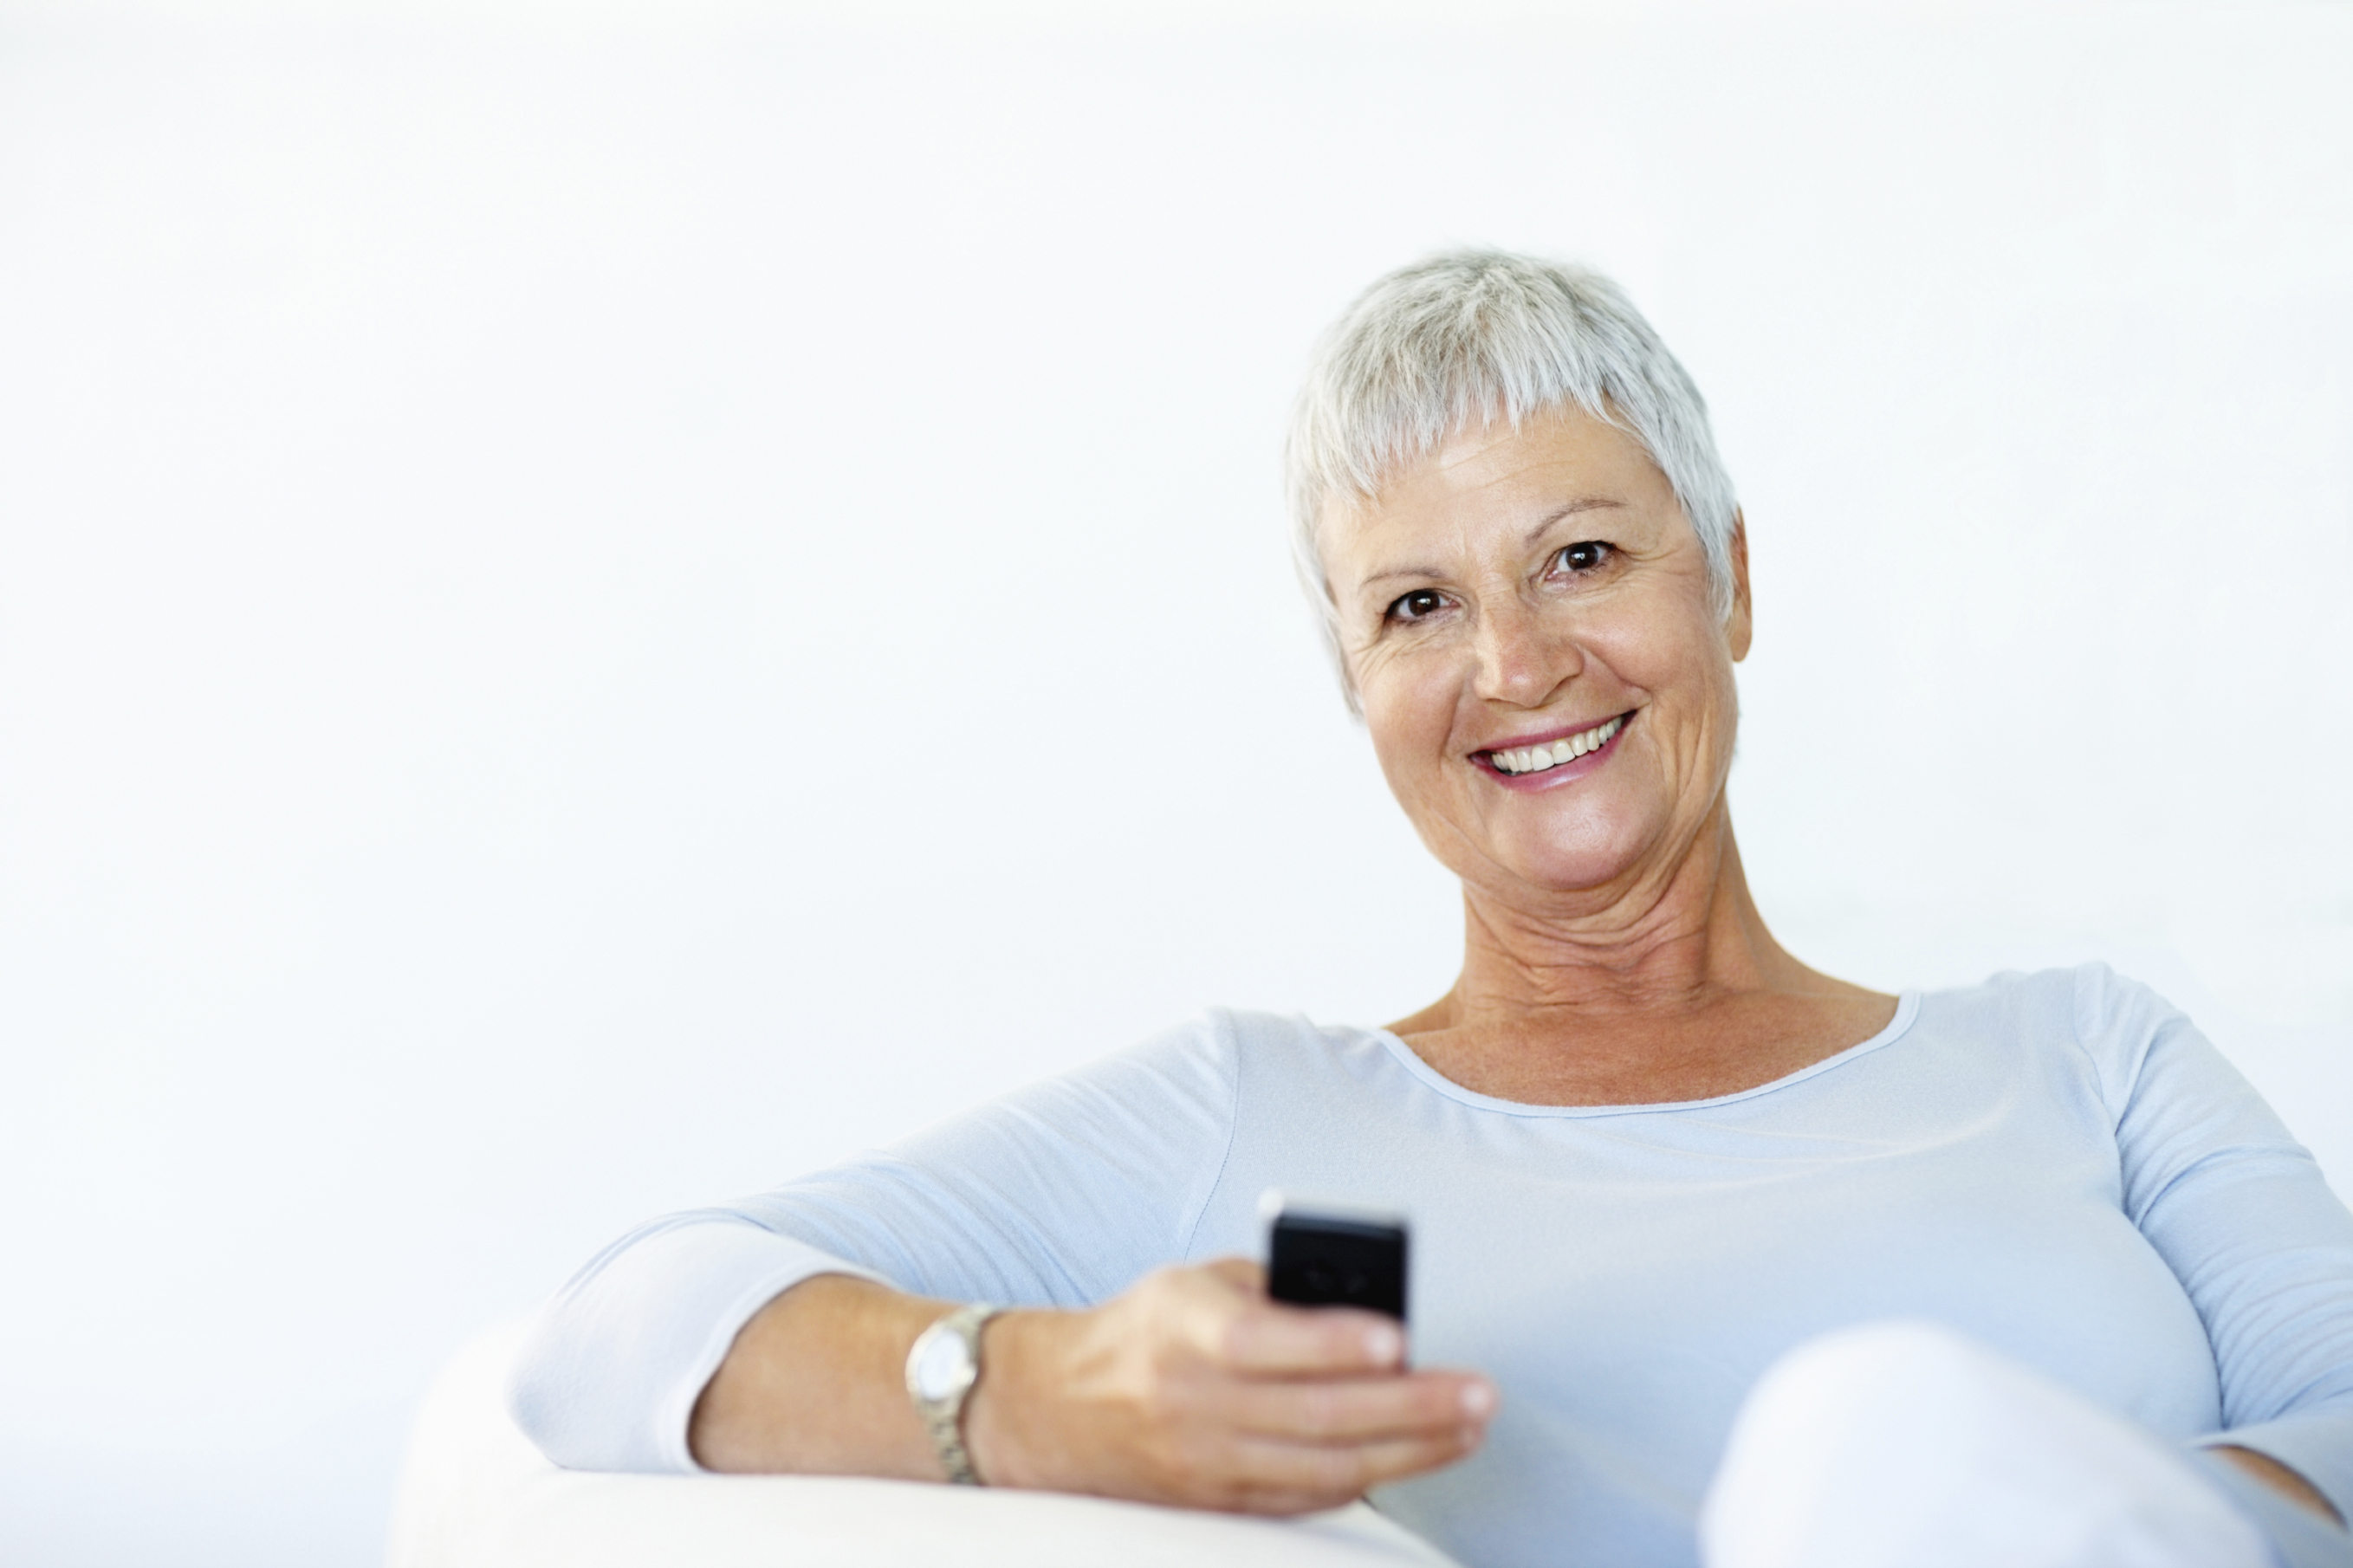 Senior with Smart phone - iStock_000015728400 (2.9MB)